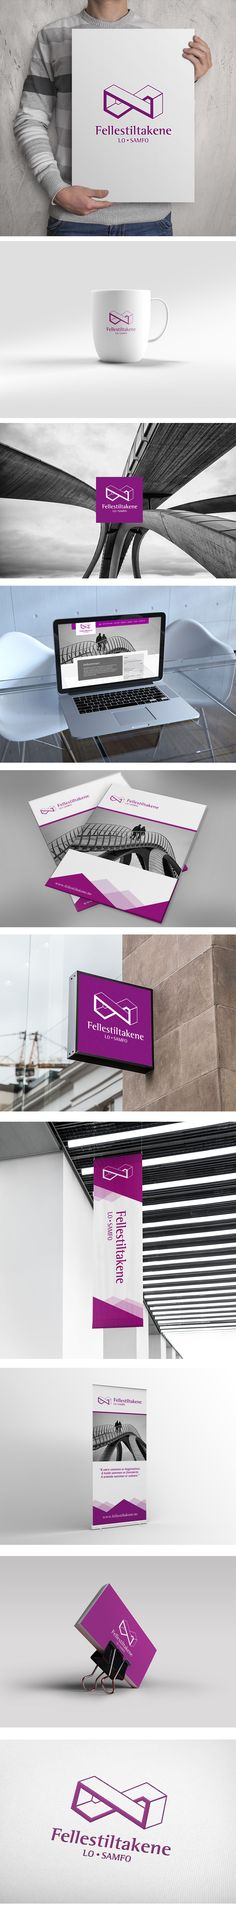 Visual identity for Fellestiltakene in Norway. #design #branding #identity #graphicdesign